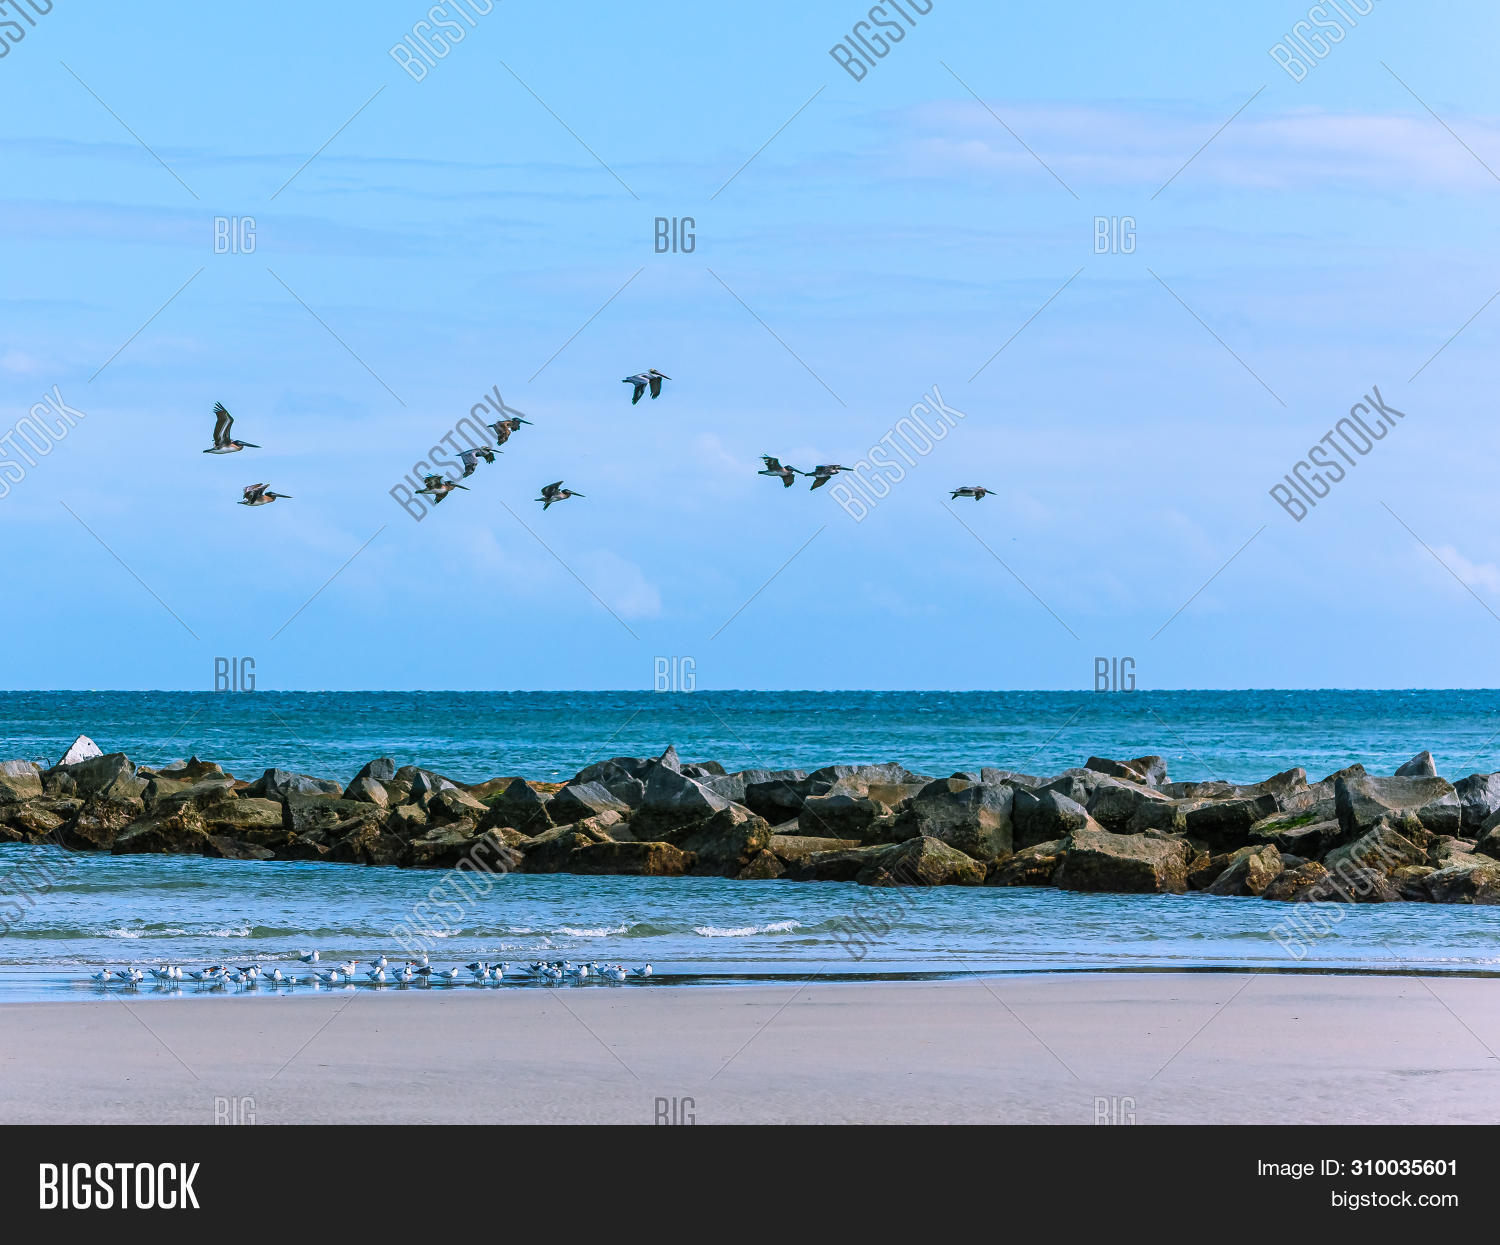 Florida,action,air,animal,background,beach,bird,blue,boulders,brown,clouds,color,flight,fly,flying,gull,horizon,inlet,jetty,message,nature,peaceful,pelican,points,river,rocks,royal,sand,scenic,seascape,shapes,sharp,shorebird,sky,space,stone,sunshine,surf,tern,textures,togetherness,tranquil,turquoise,wading,water,waves,wildlife,wings,copy